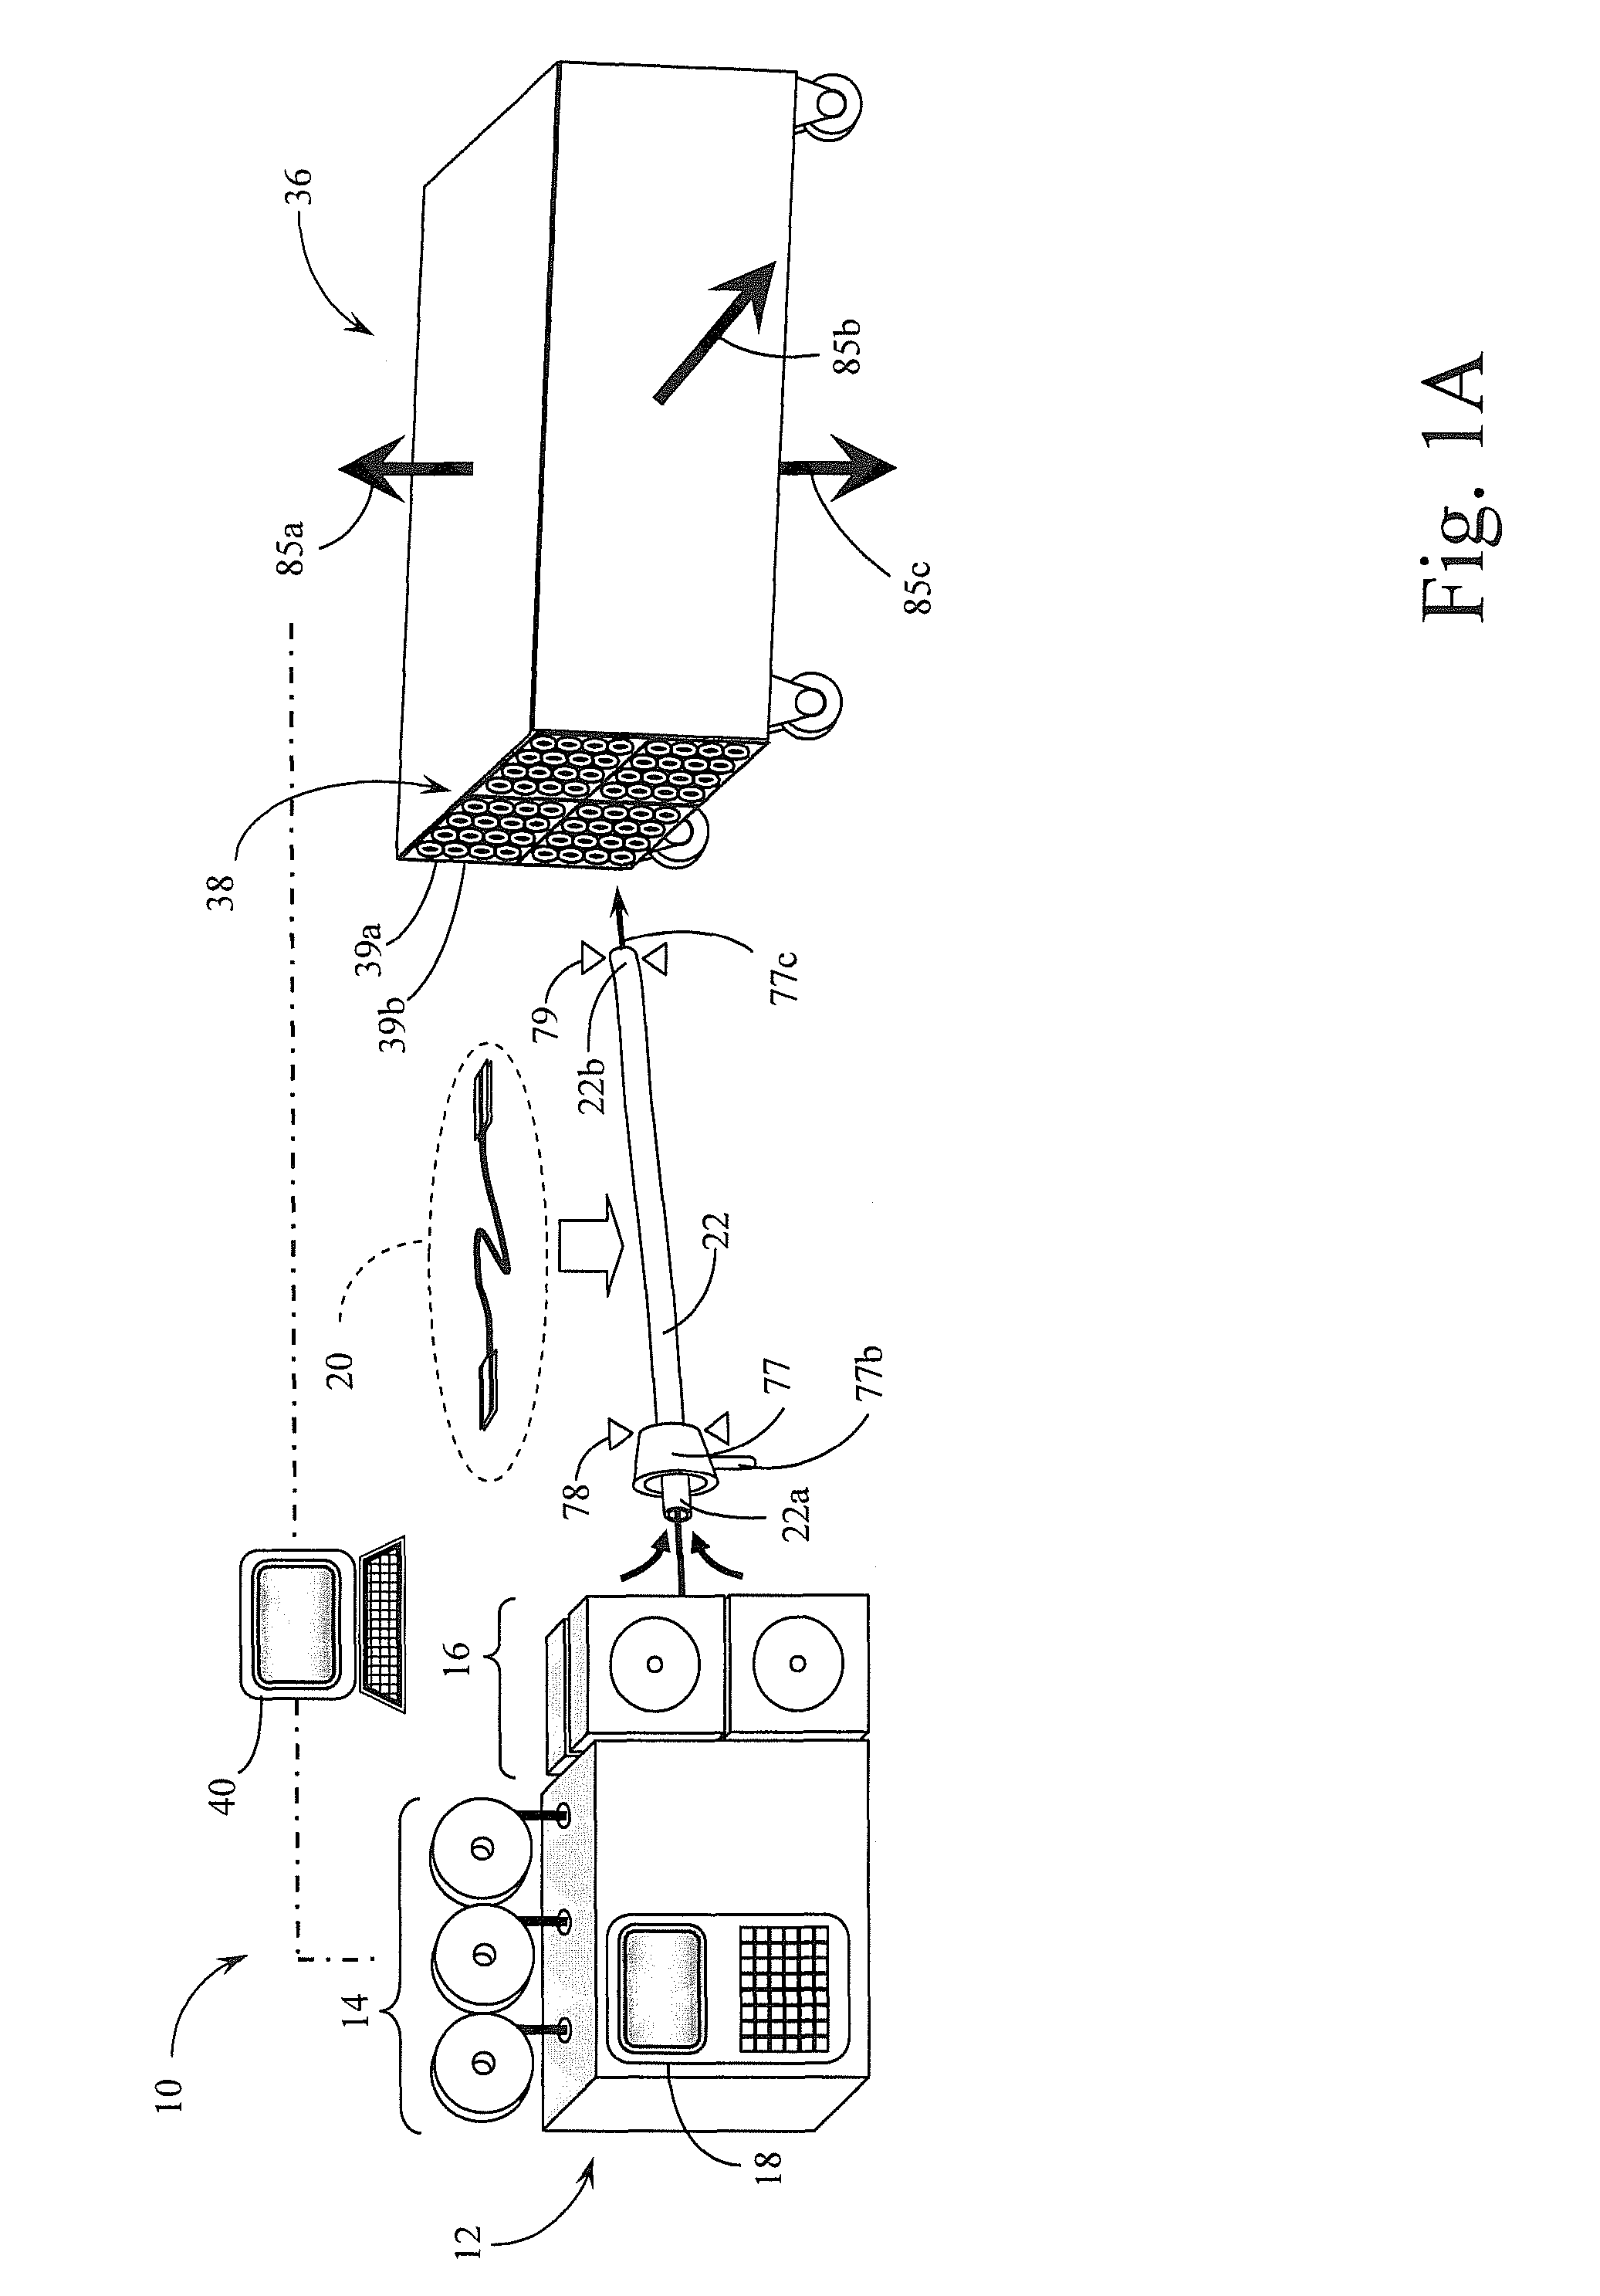 patent us8442664 - integrated wire harness batch production systems and methods